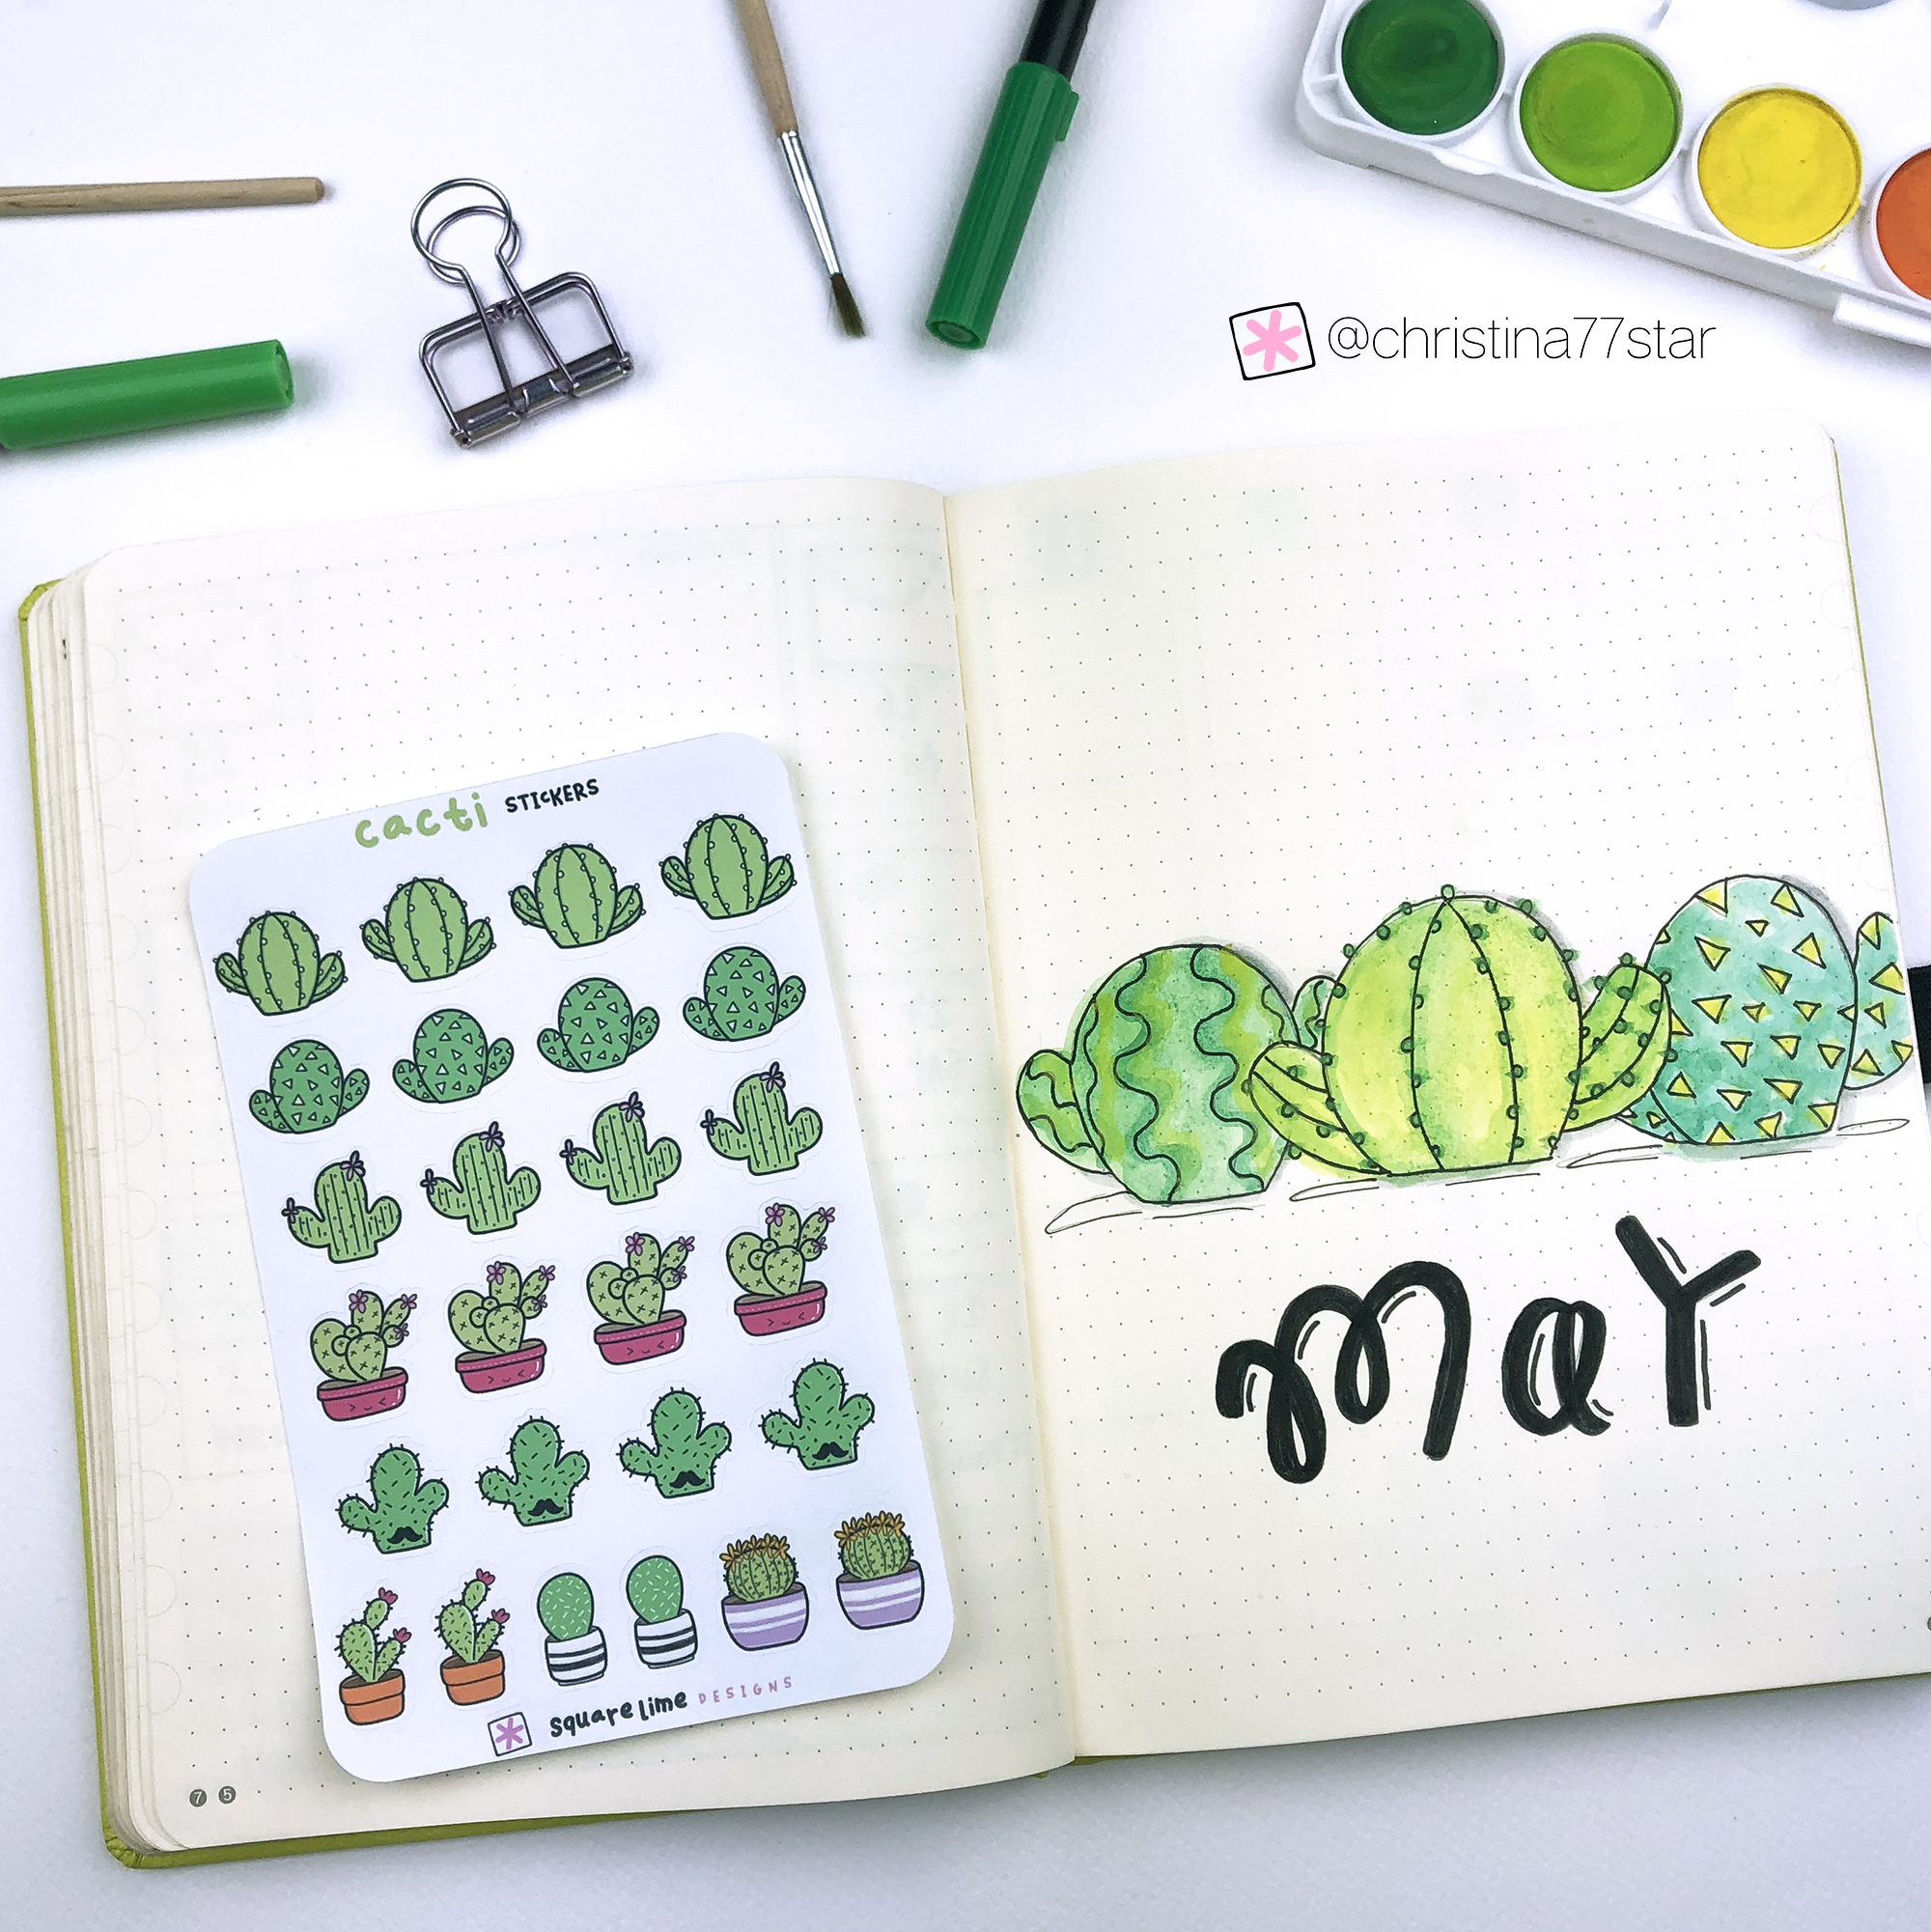 Cacti Stickers - May 2019 bullet journal setup - www.christina77star.net